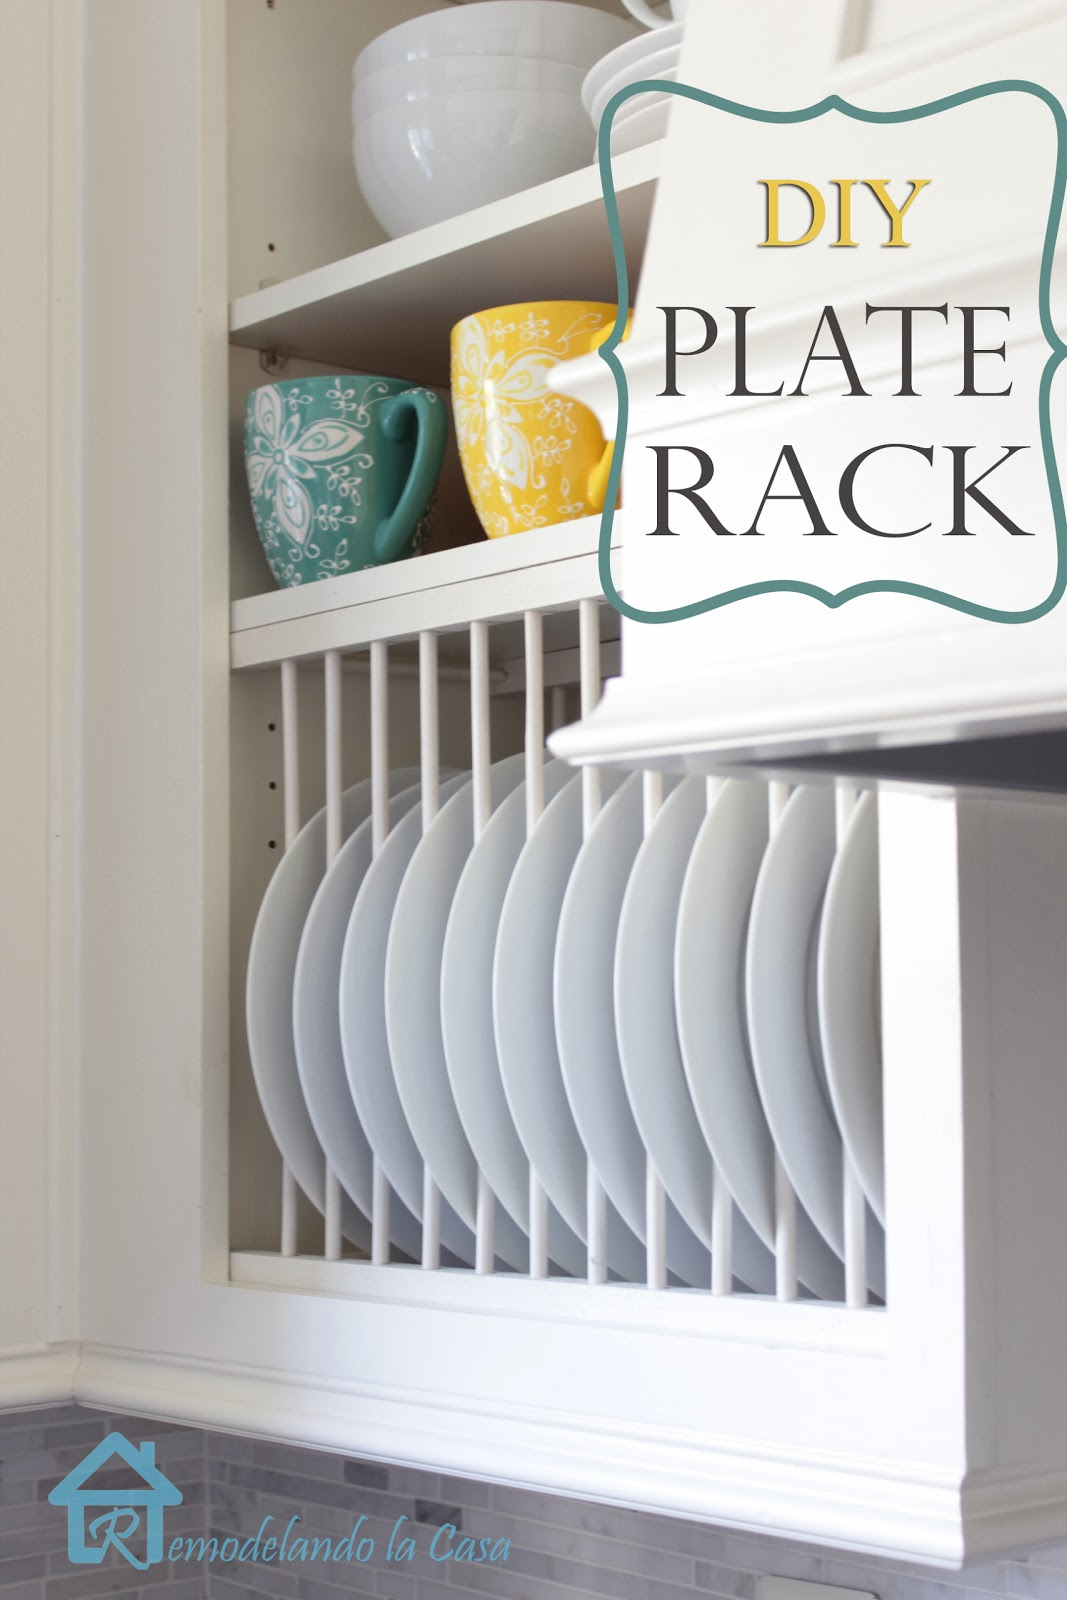 Under cabinet plate rack plans free - How To Make A Plate Rack Inside A Cabinet